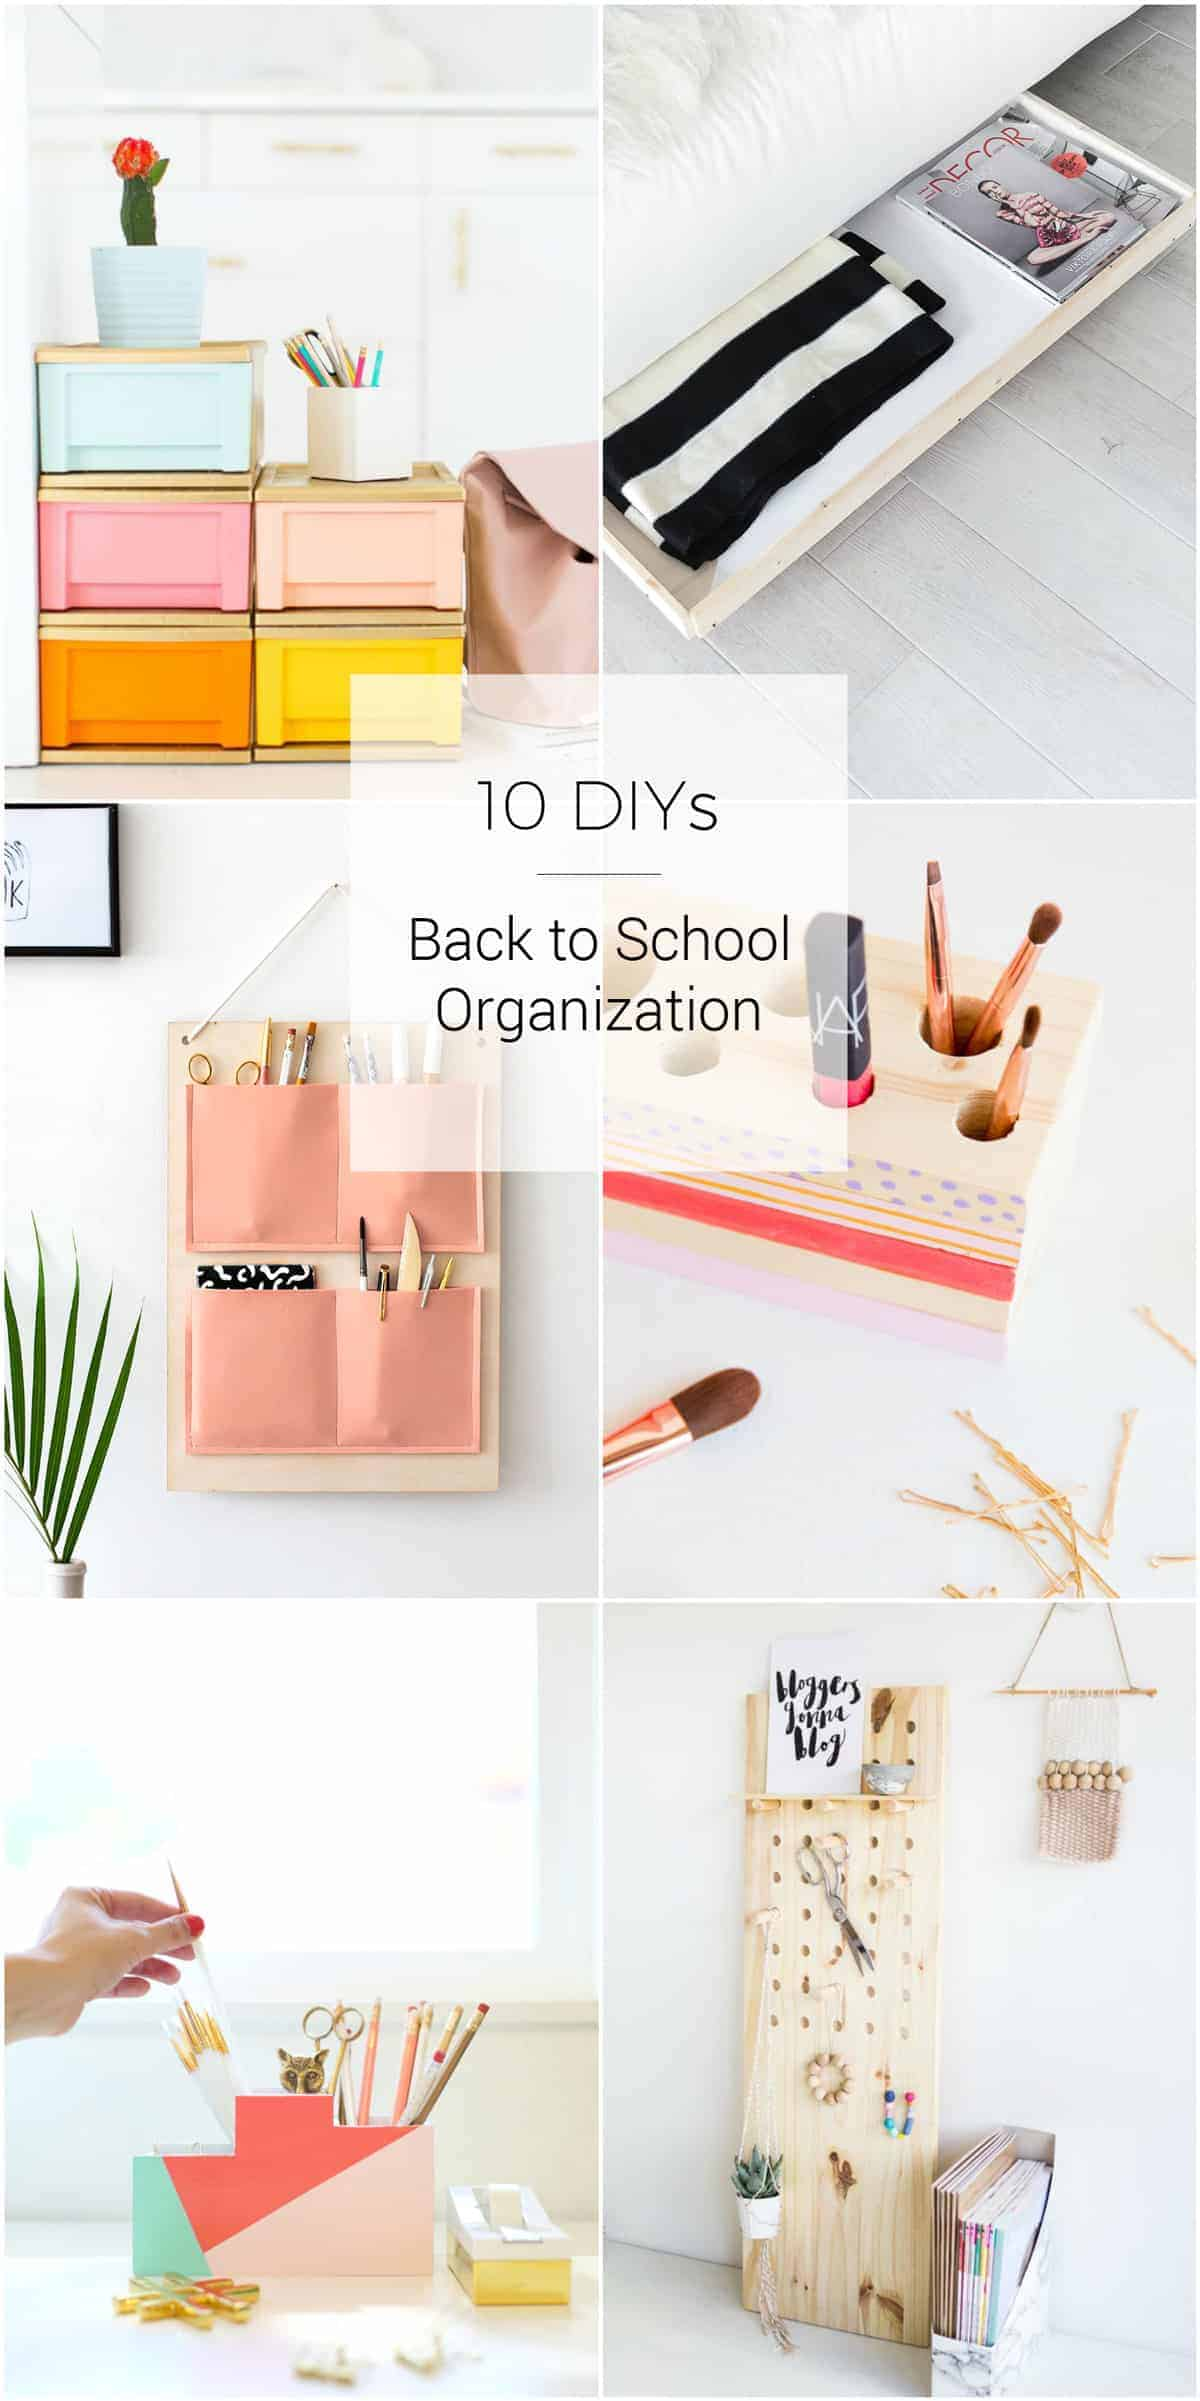 10 Diy Ideas For Back To School Organization Fish Amp Bull